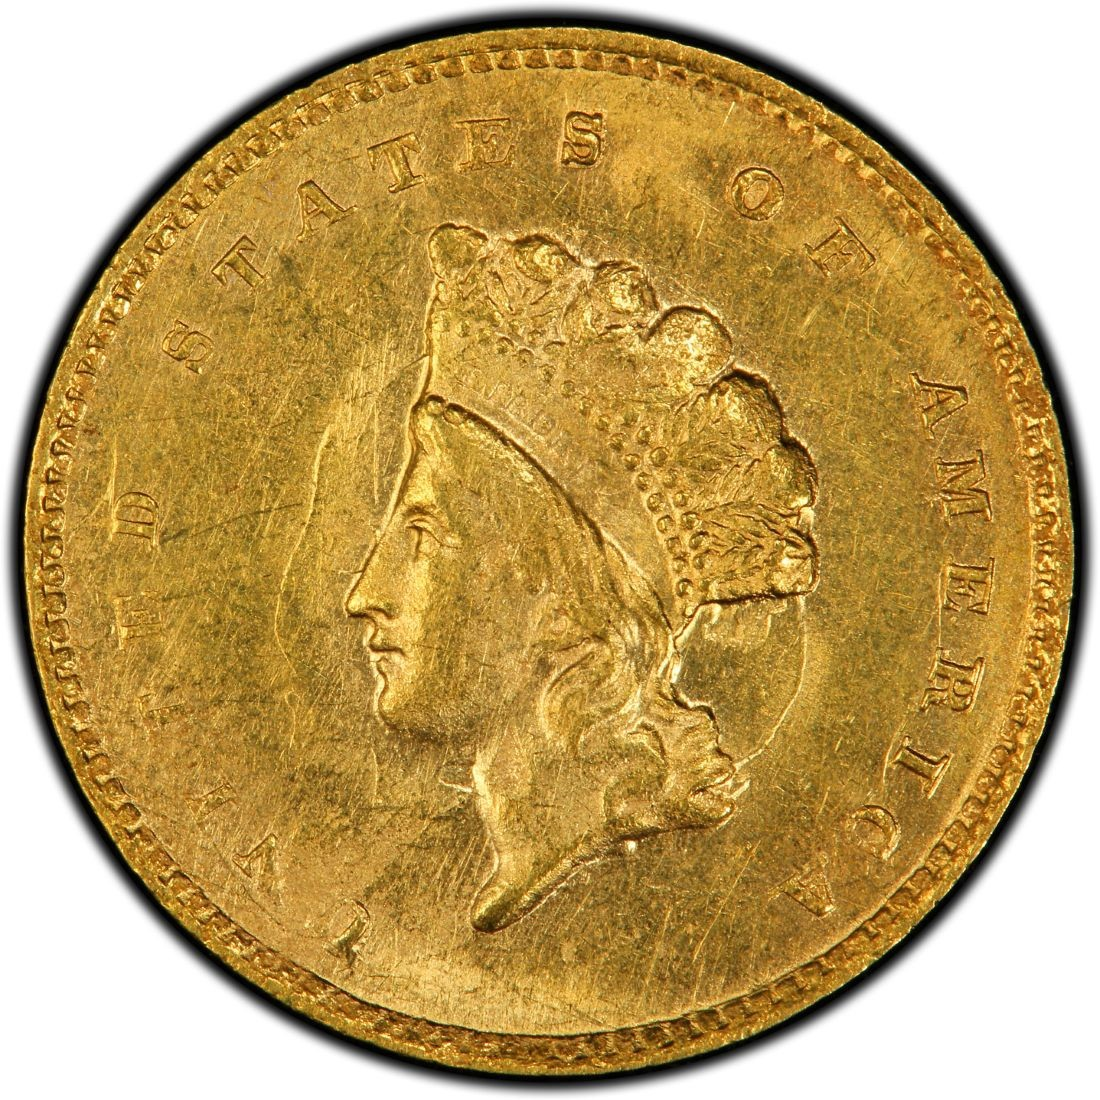 1855 Small Head Indian Princess Gold Dollar Values And